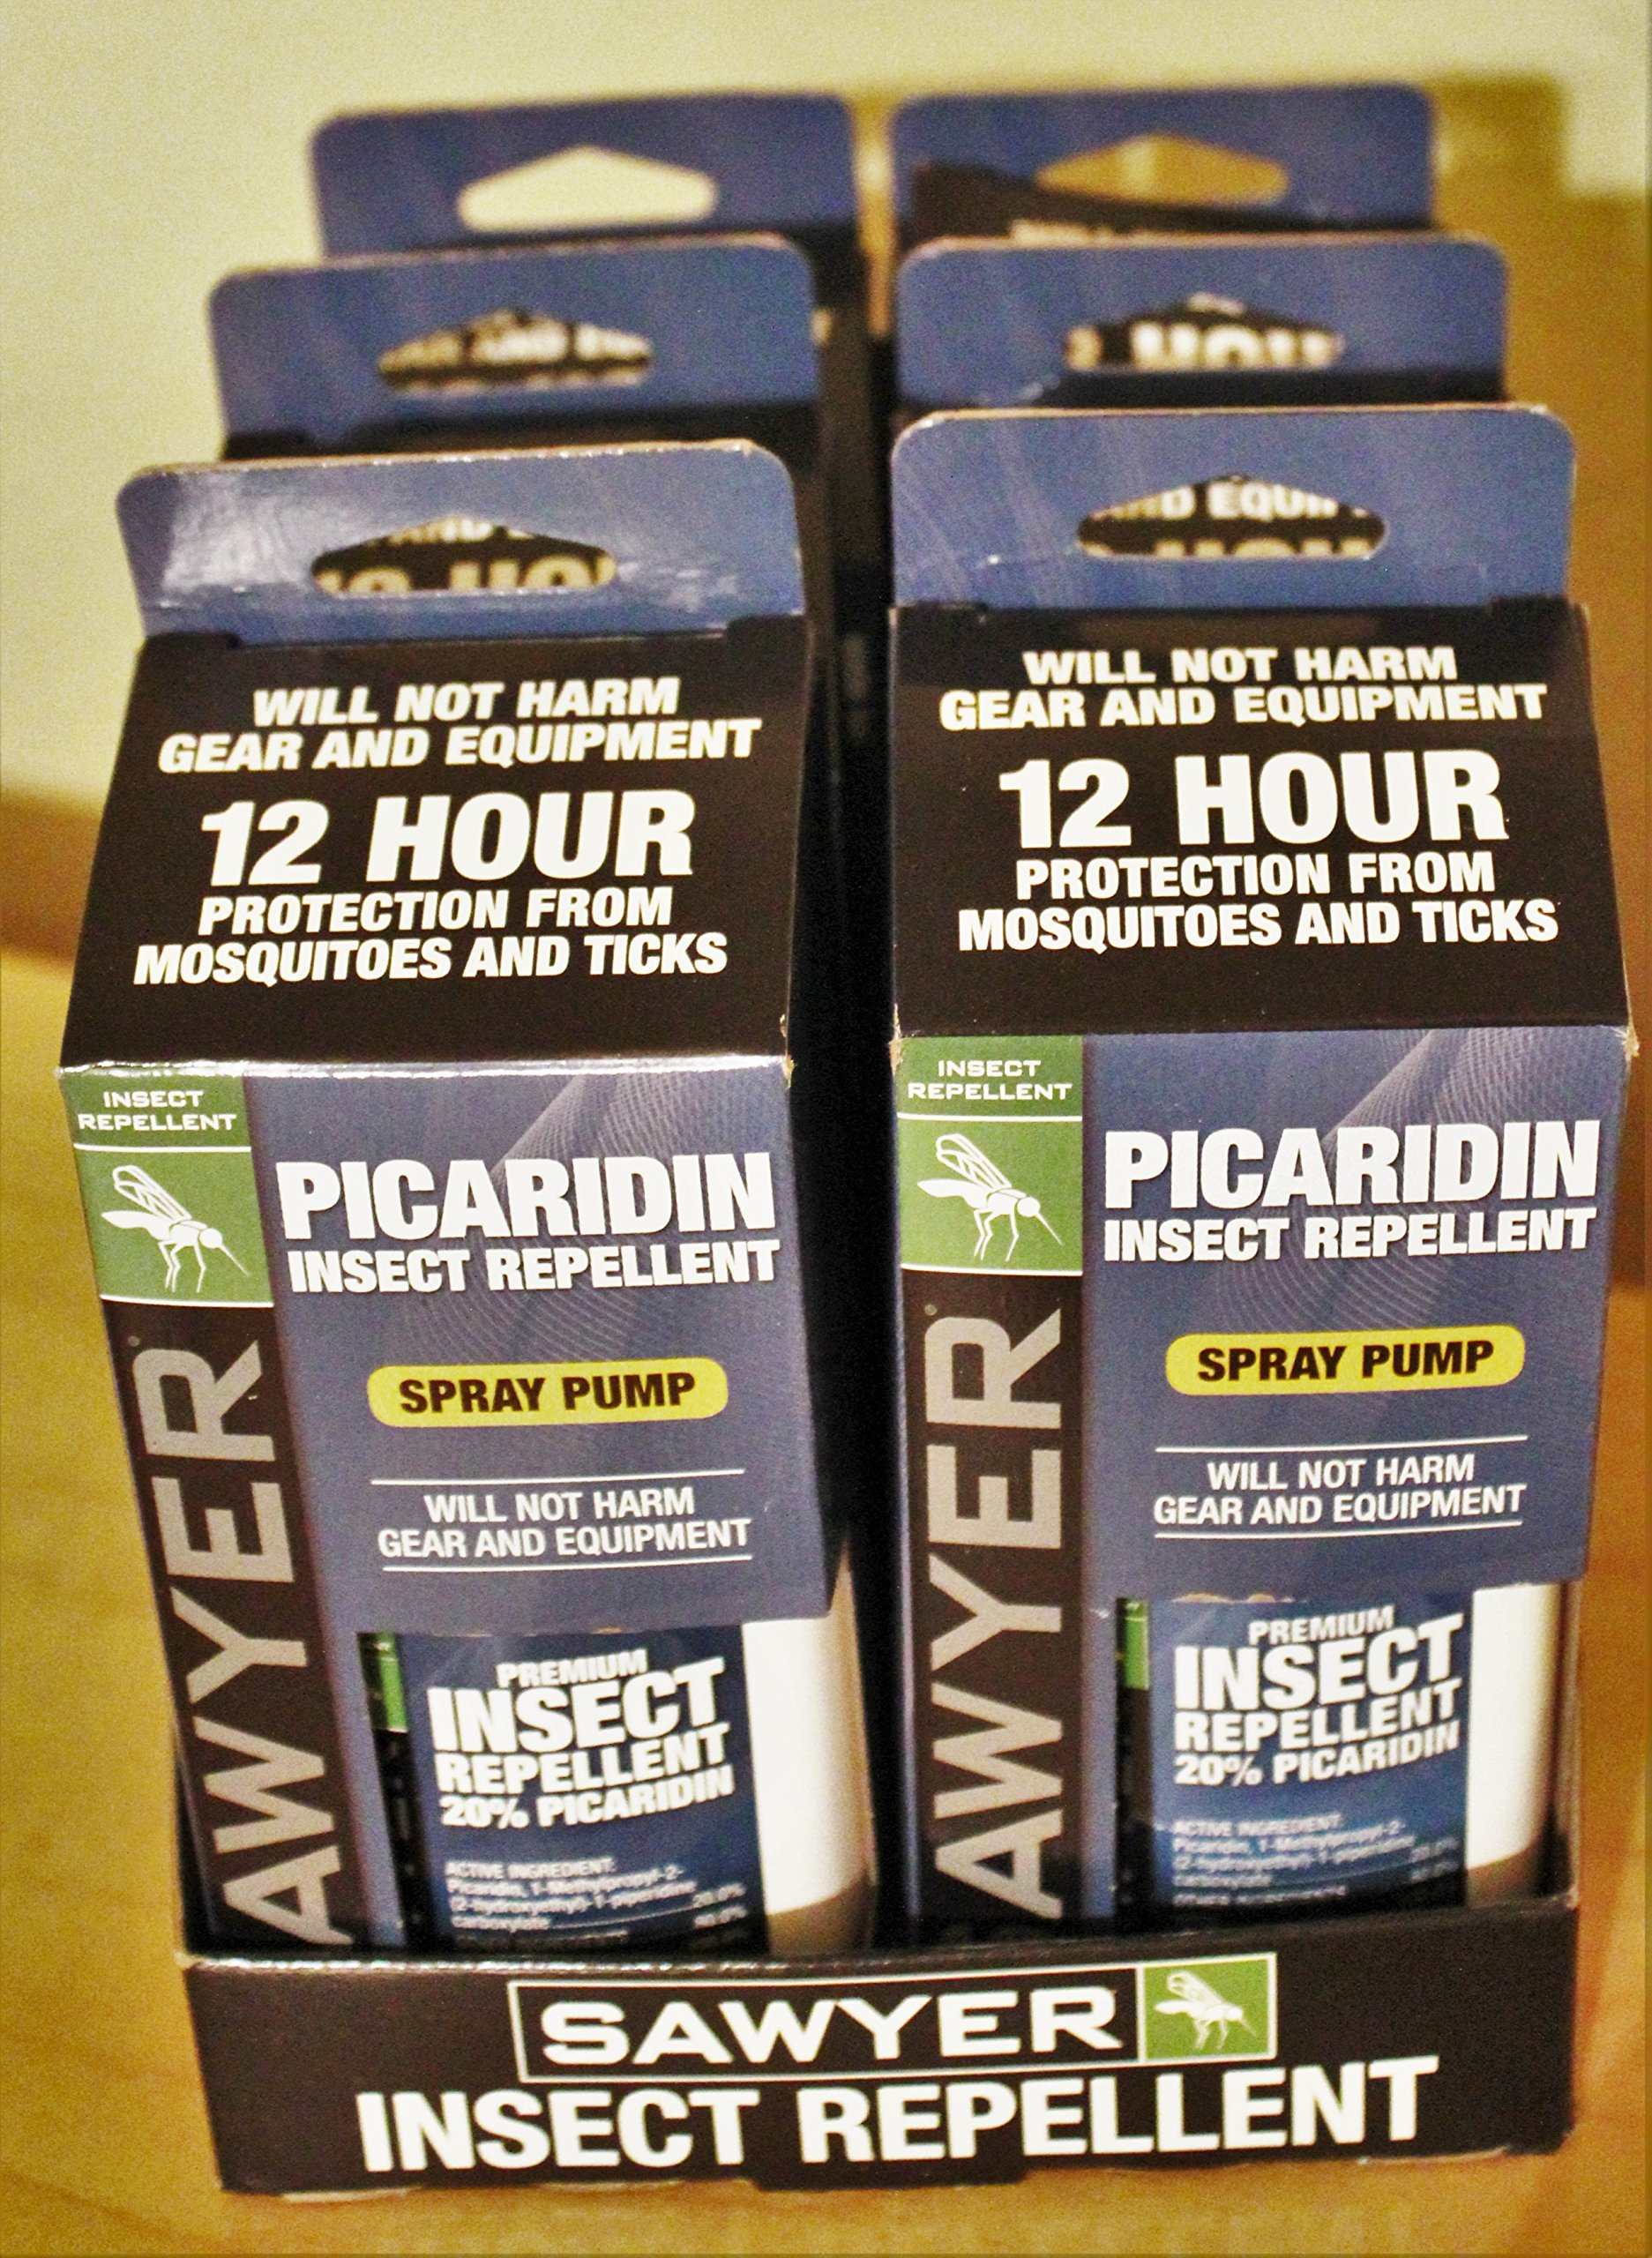 6 Pack of Sawyer Picaridin Insect Repellent Fisherman's Formula 4 oz spray SP544 by SAWYER